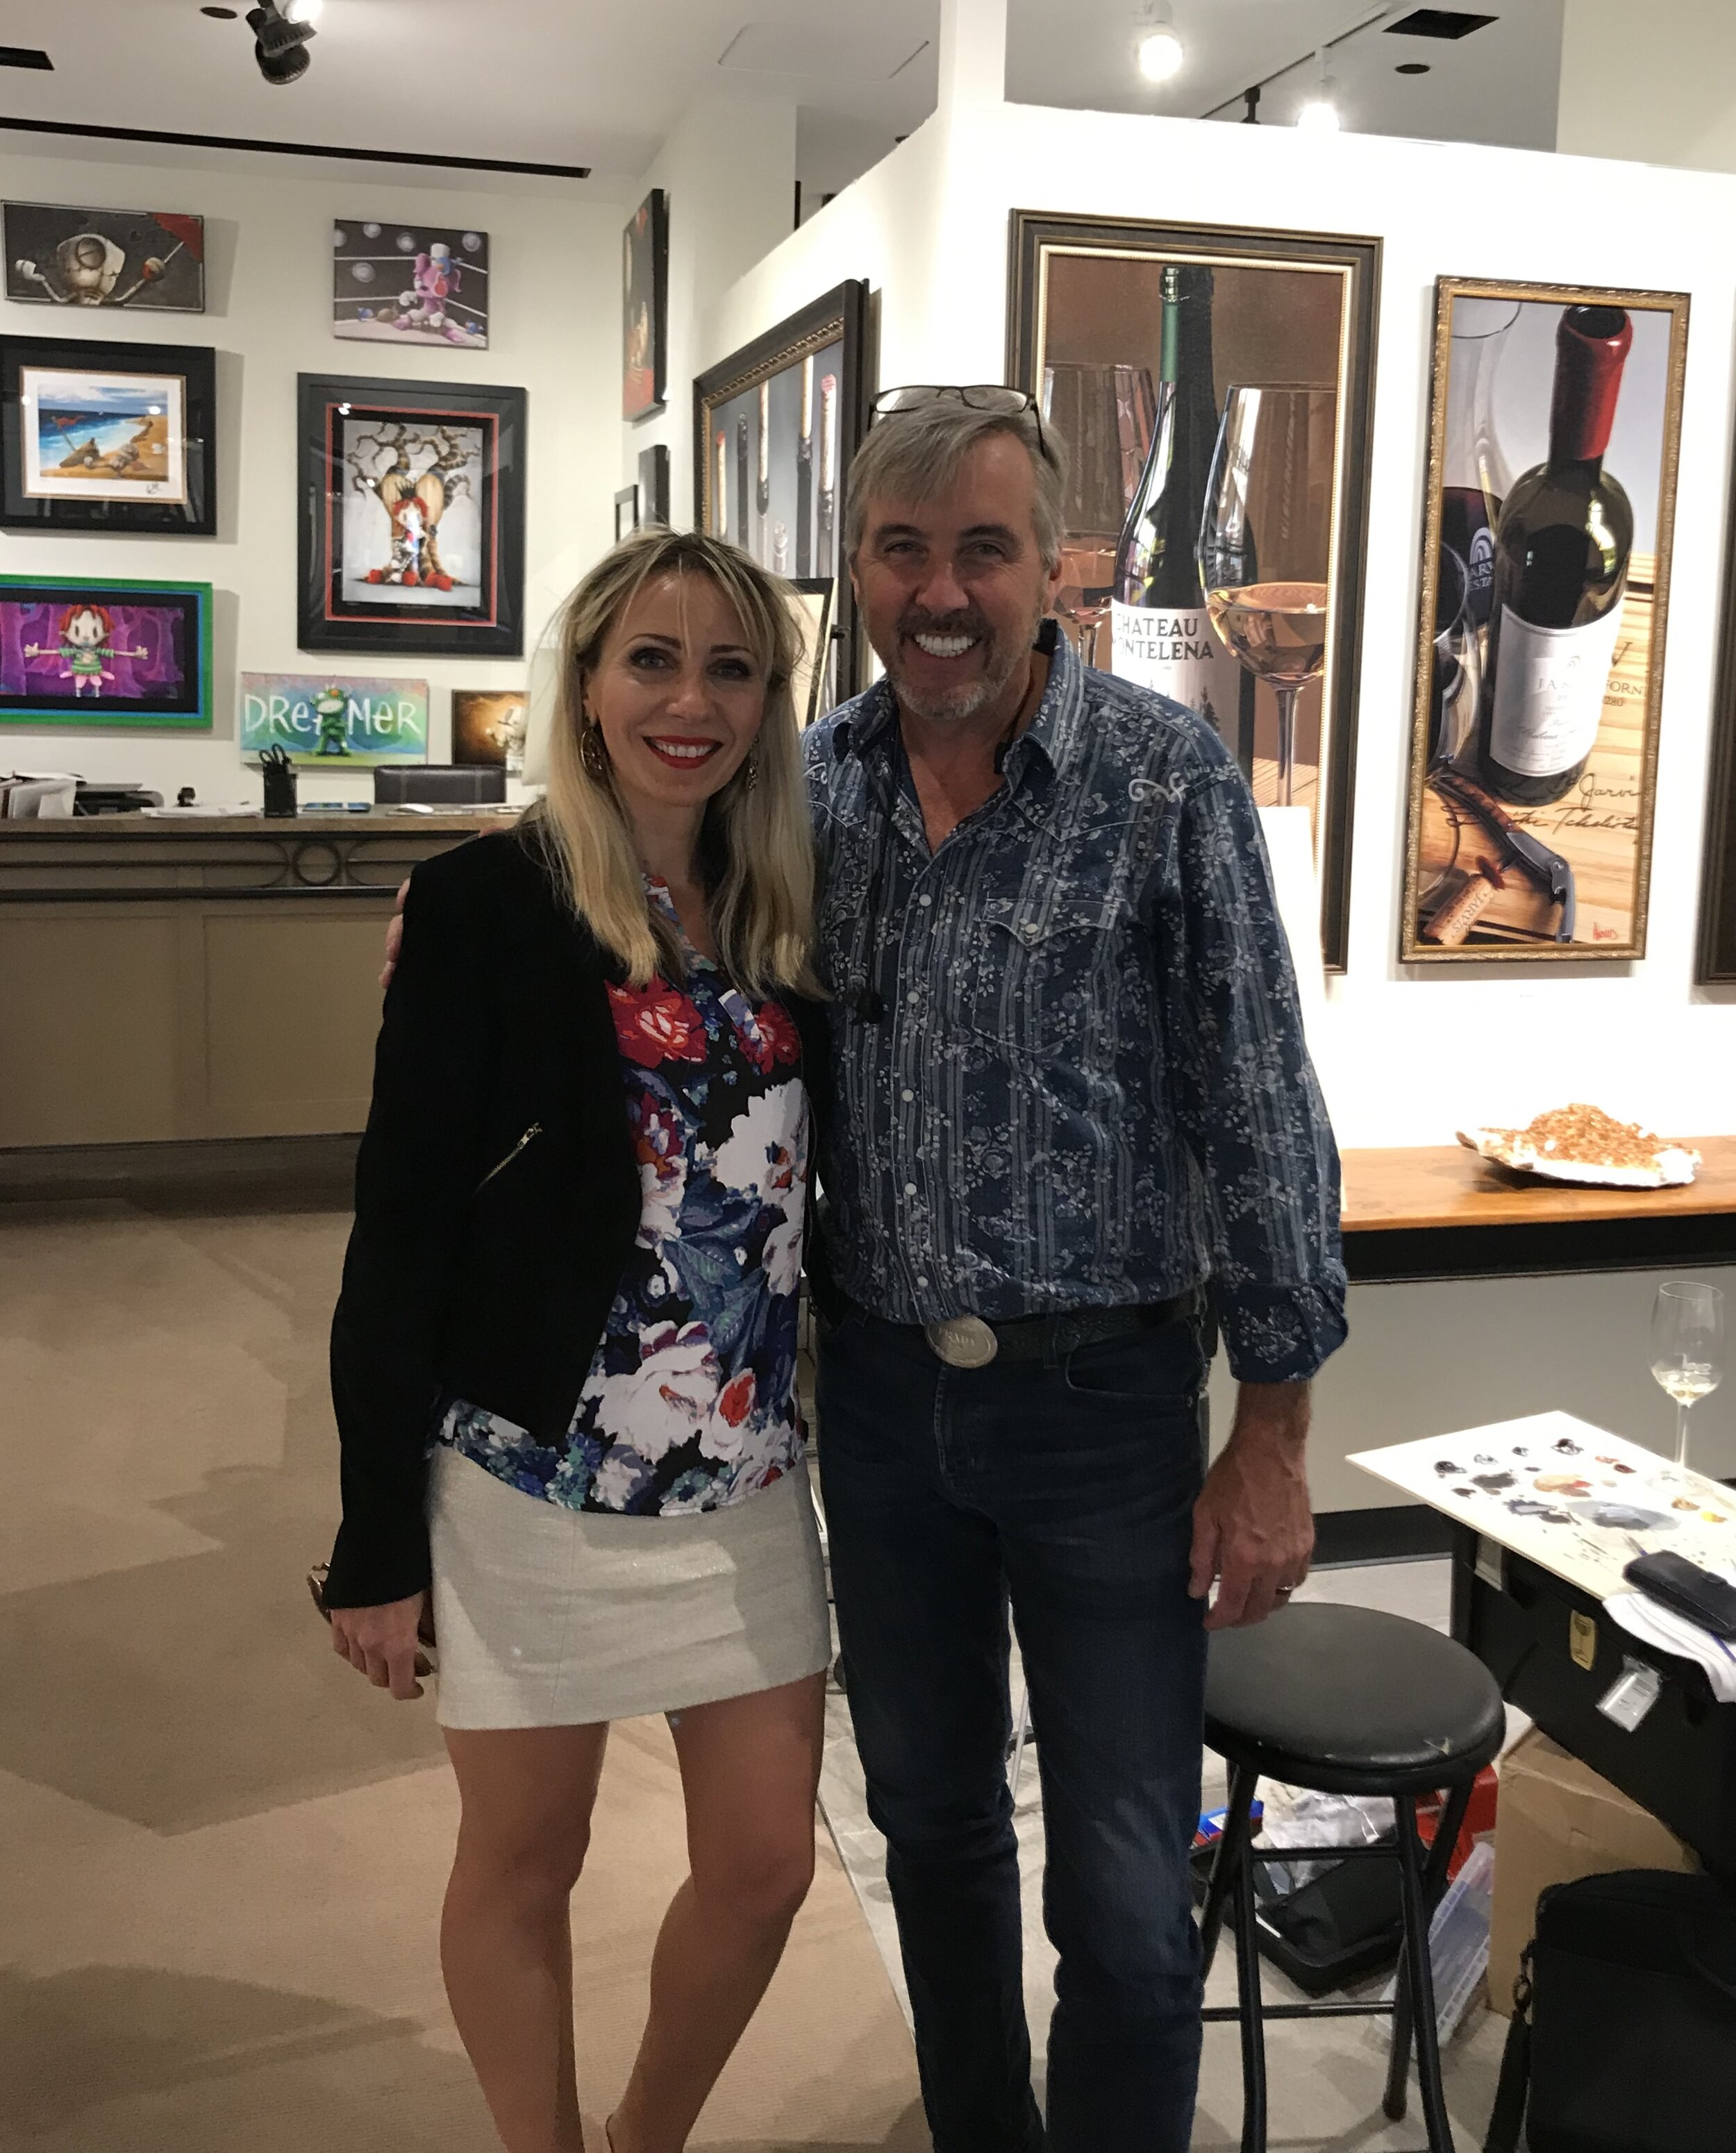 Meeting the legend! Art & Wine are two my favorite things!